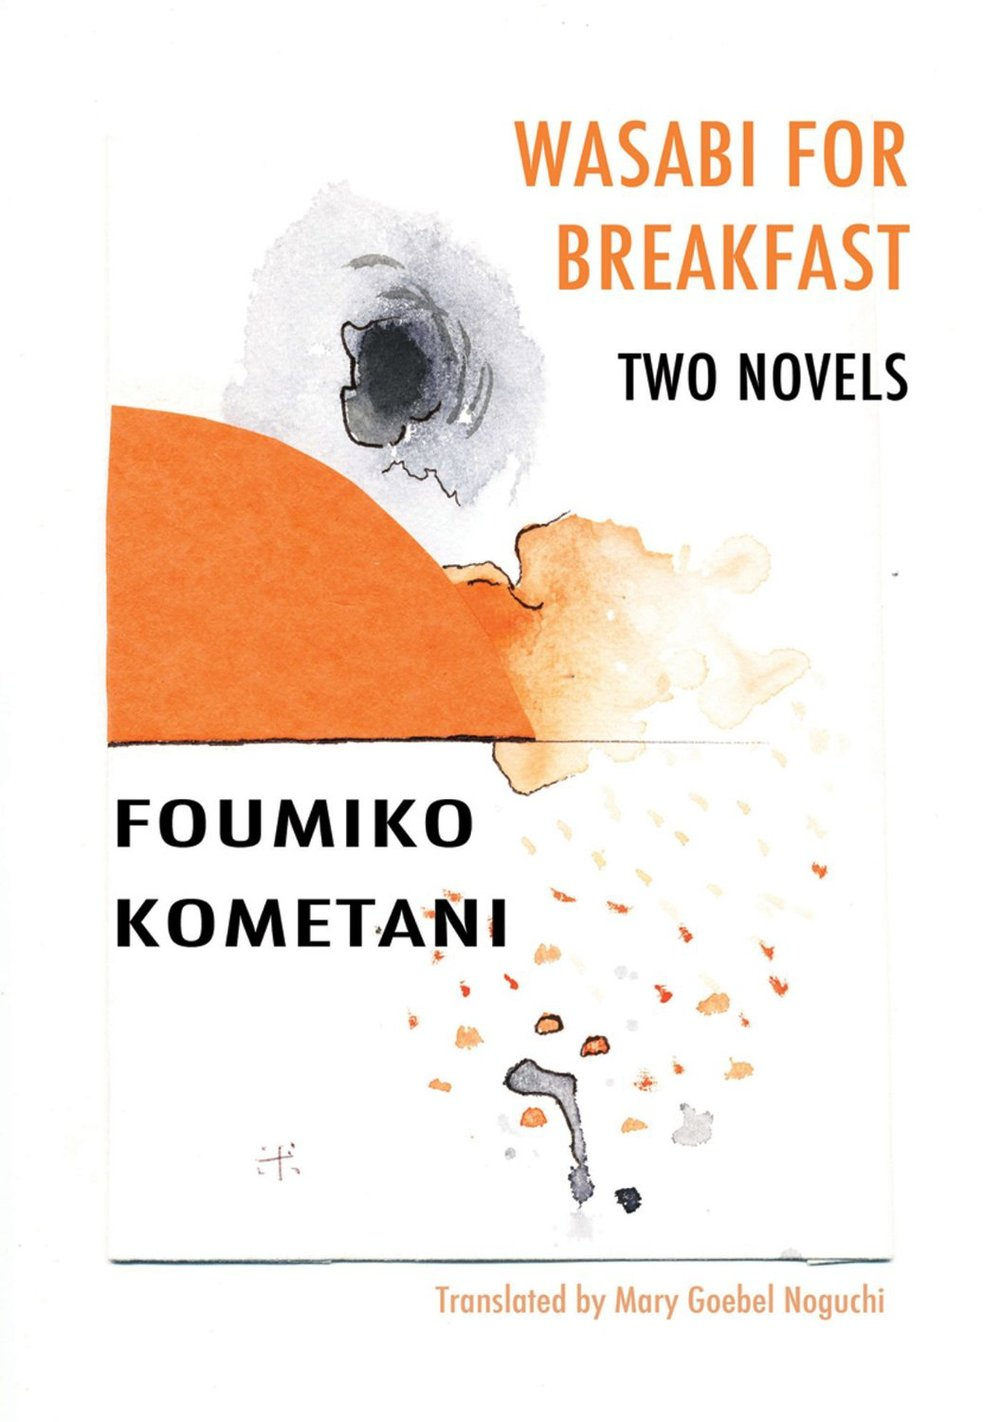 by Foumiko Kometani, translated from JAPANESE by Mary Goebel Noguchi